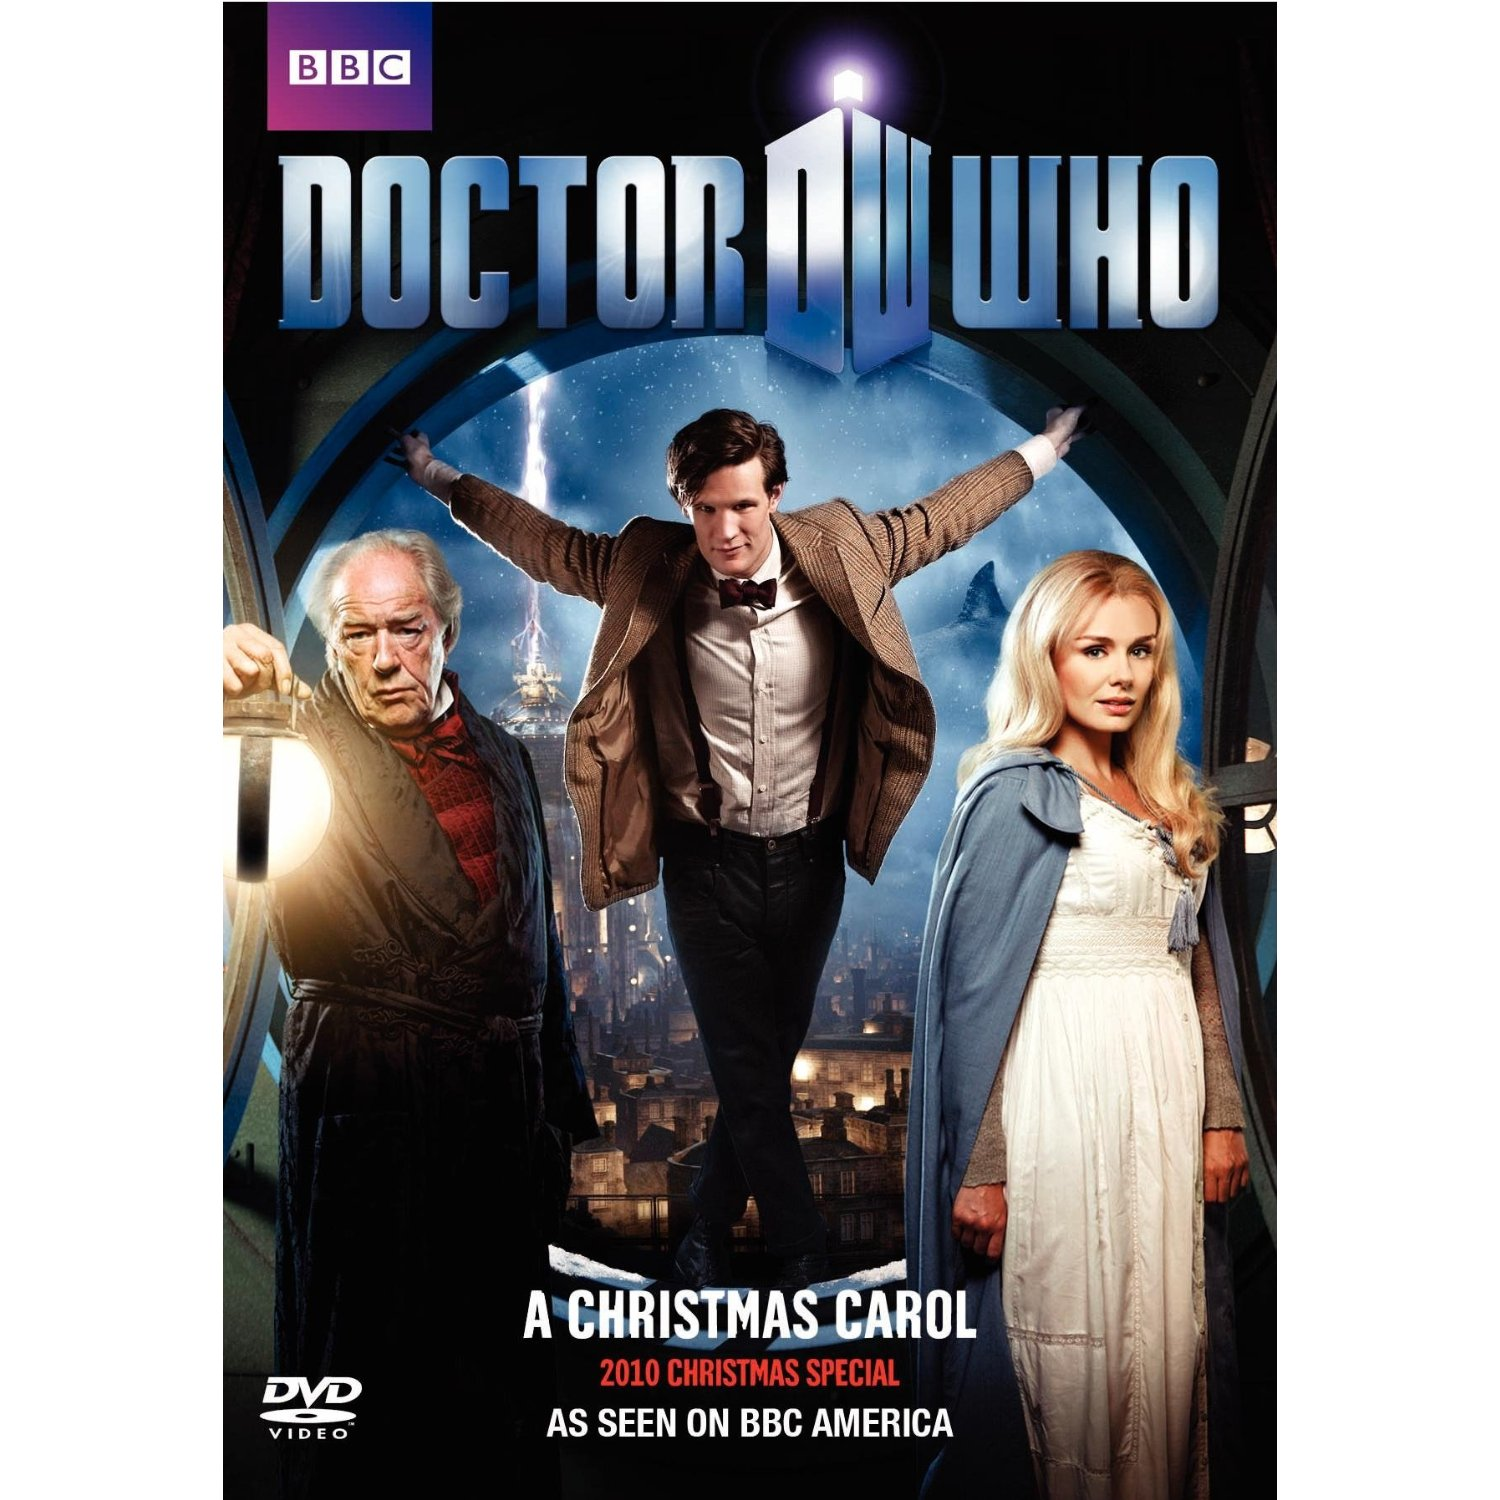 DOCTOR WHO on TWITTER Part 2 - The Xmas Special : A Christmas Carol